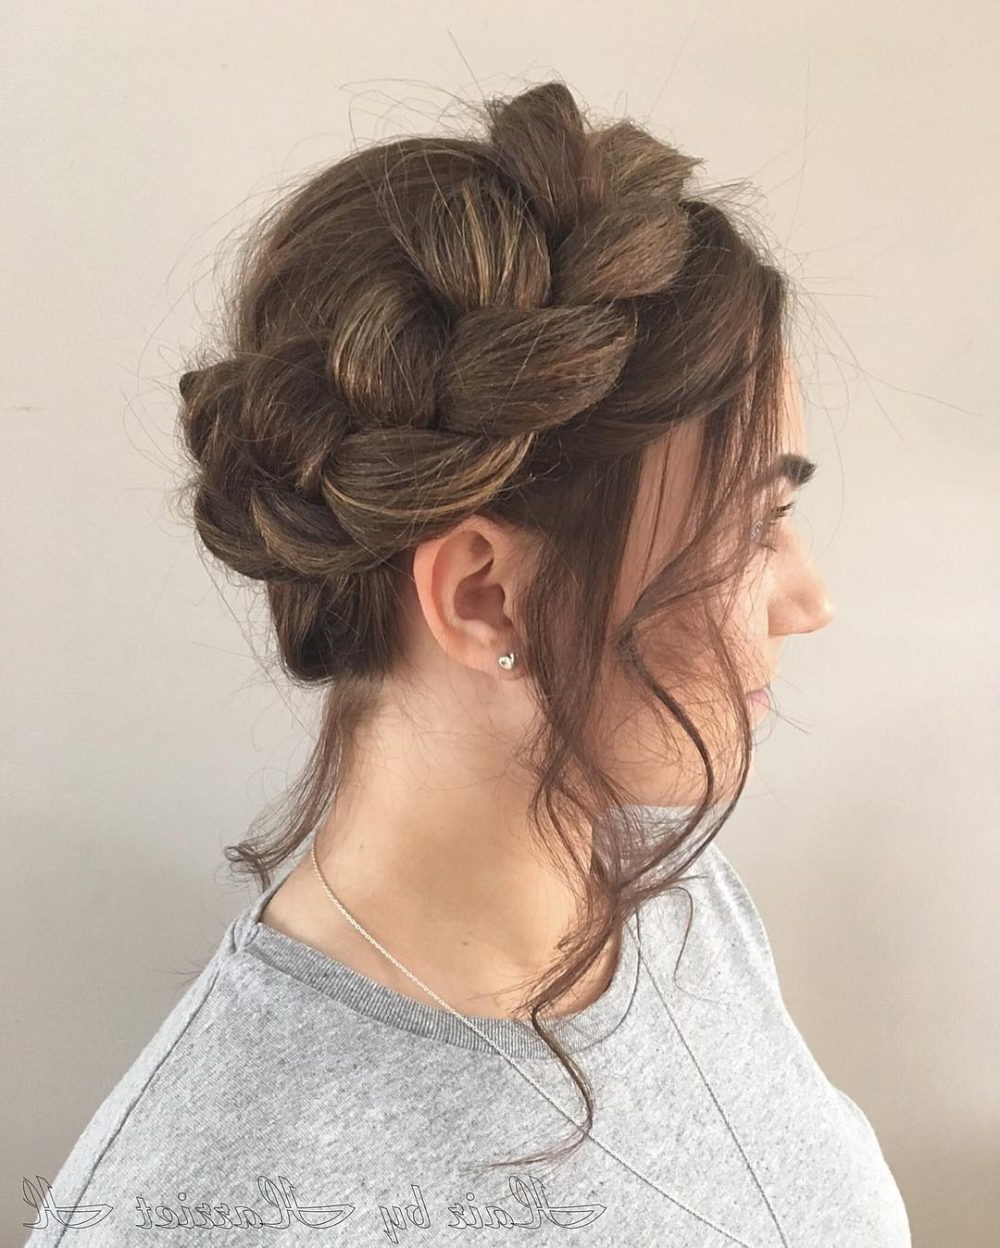 29 Gorgeous Braided Updo Ideas For 2019 Inside Trendy Side Bun Twined Prom Hairstyles With A Braid (View 5 of 20)